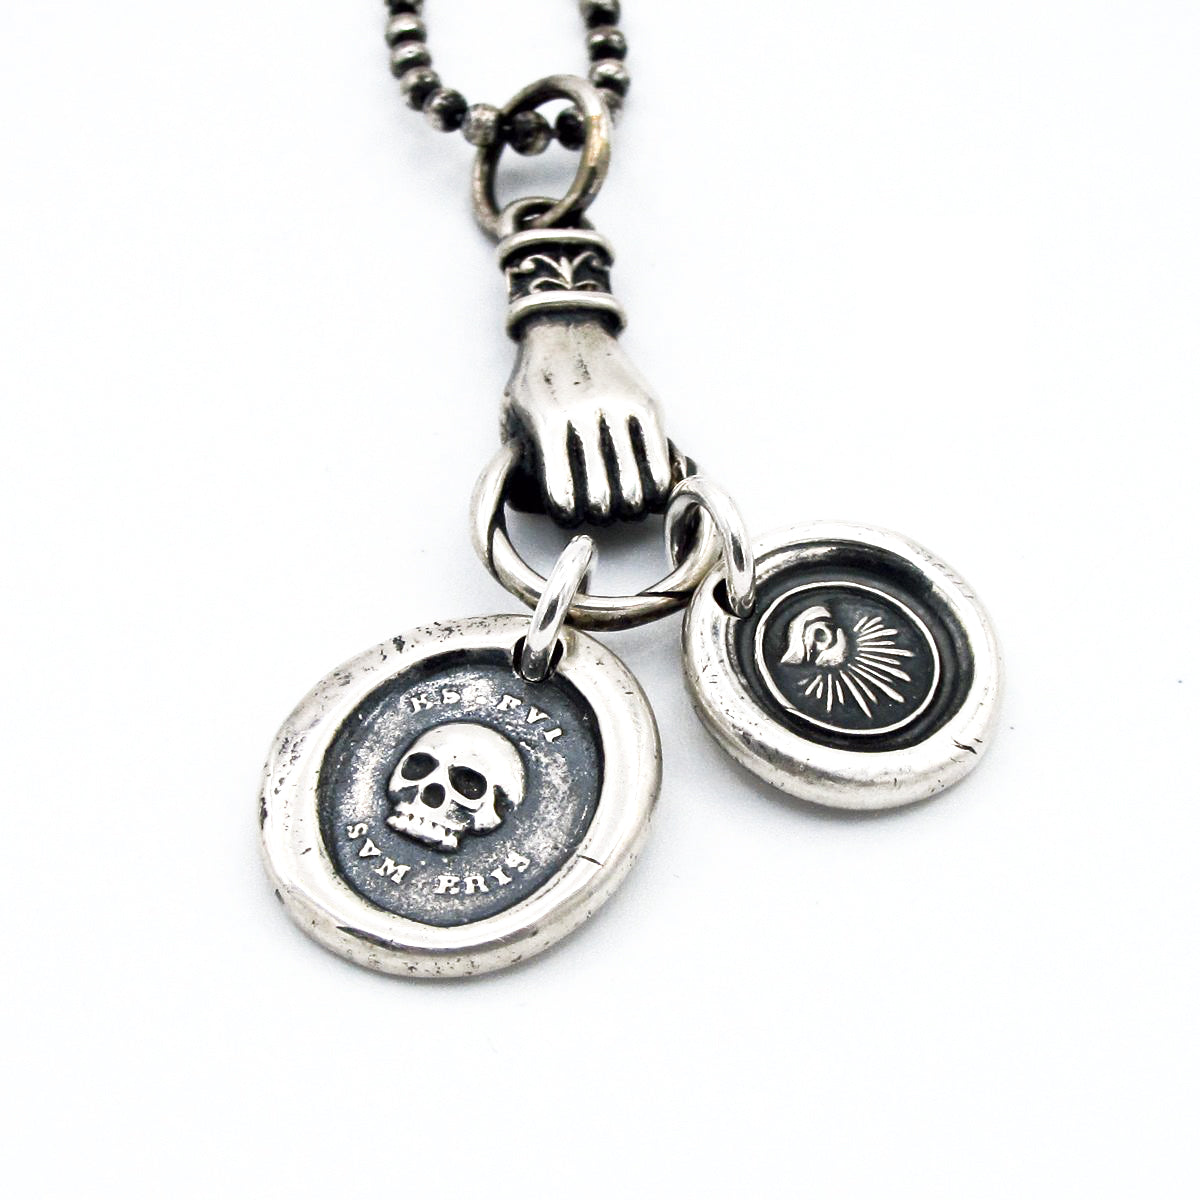 Muse rocktonica jewellery london mens luxury ball chain necklace with silver hand clutching a skull and all mozeypictures Gallery